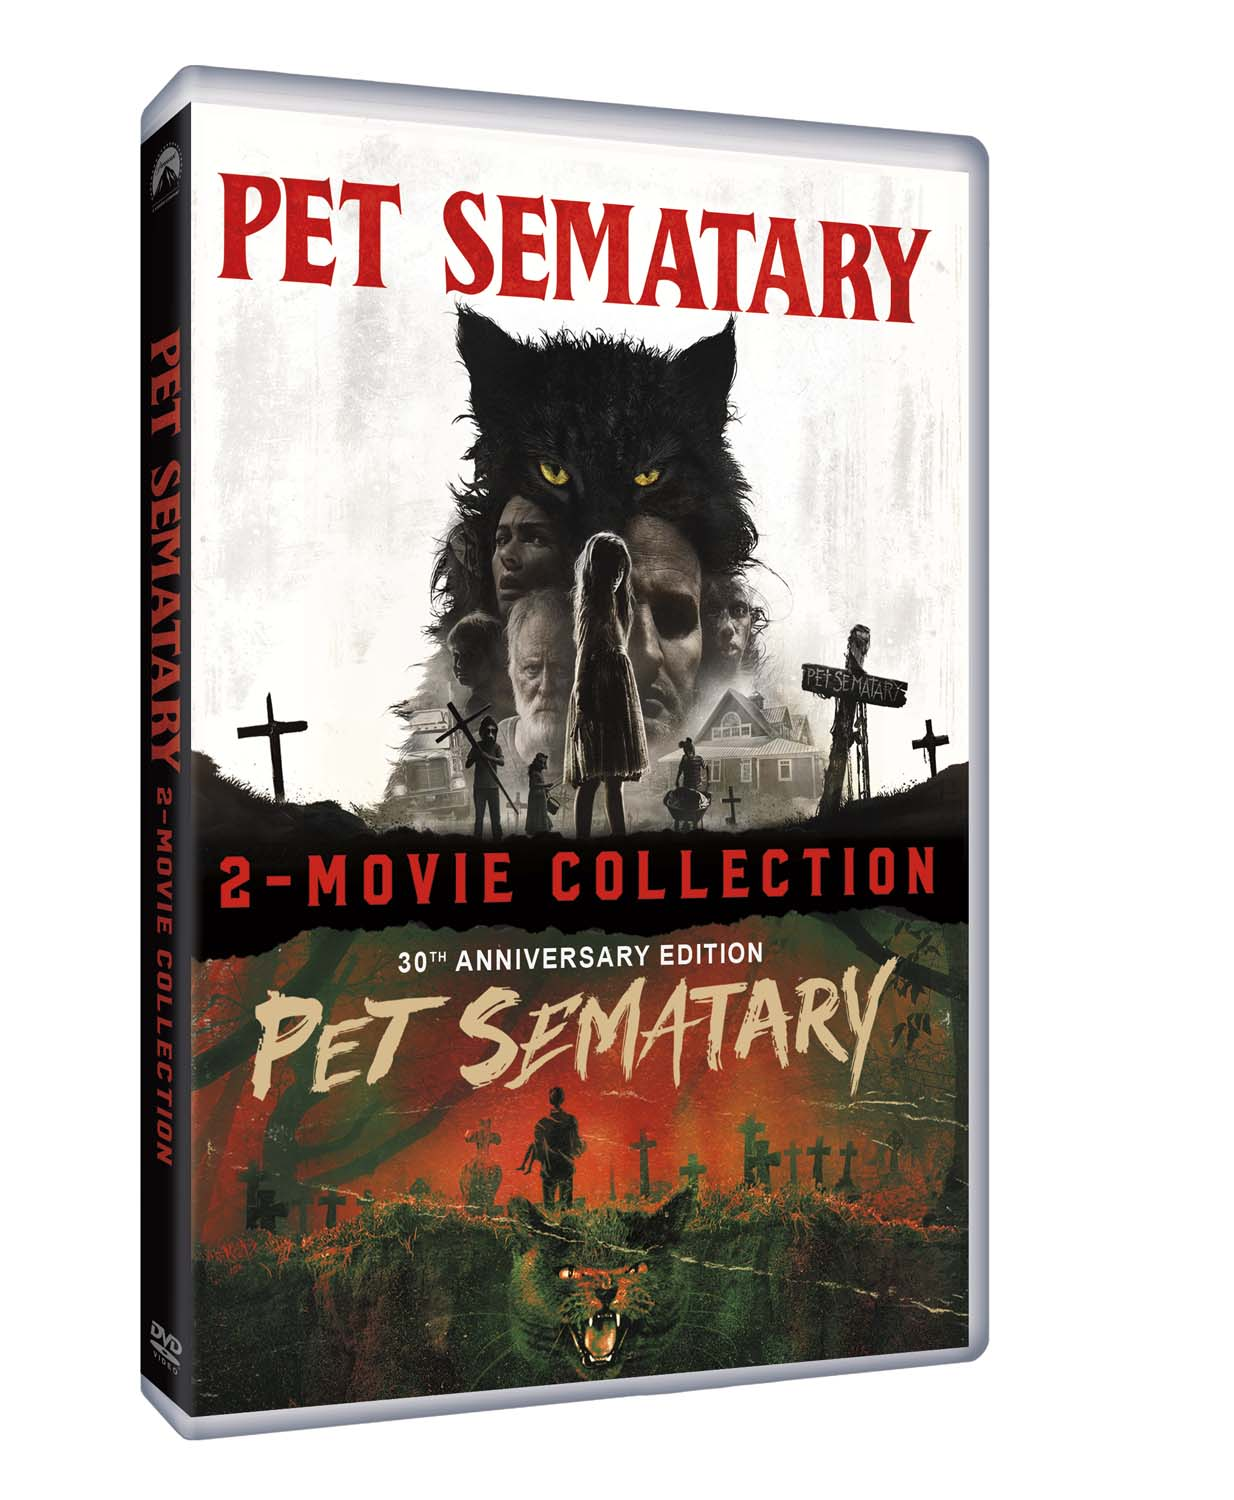 COF.PET SEMATARY COLLECTION (2 DVD) (DVD)